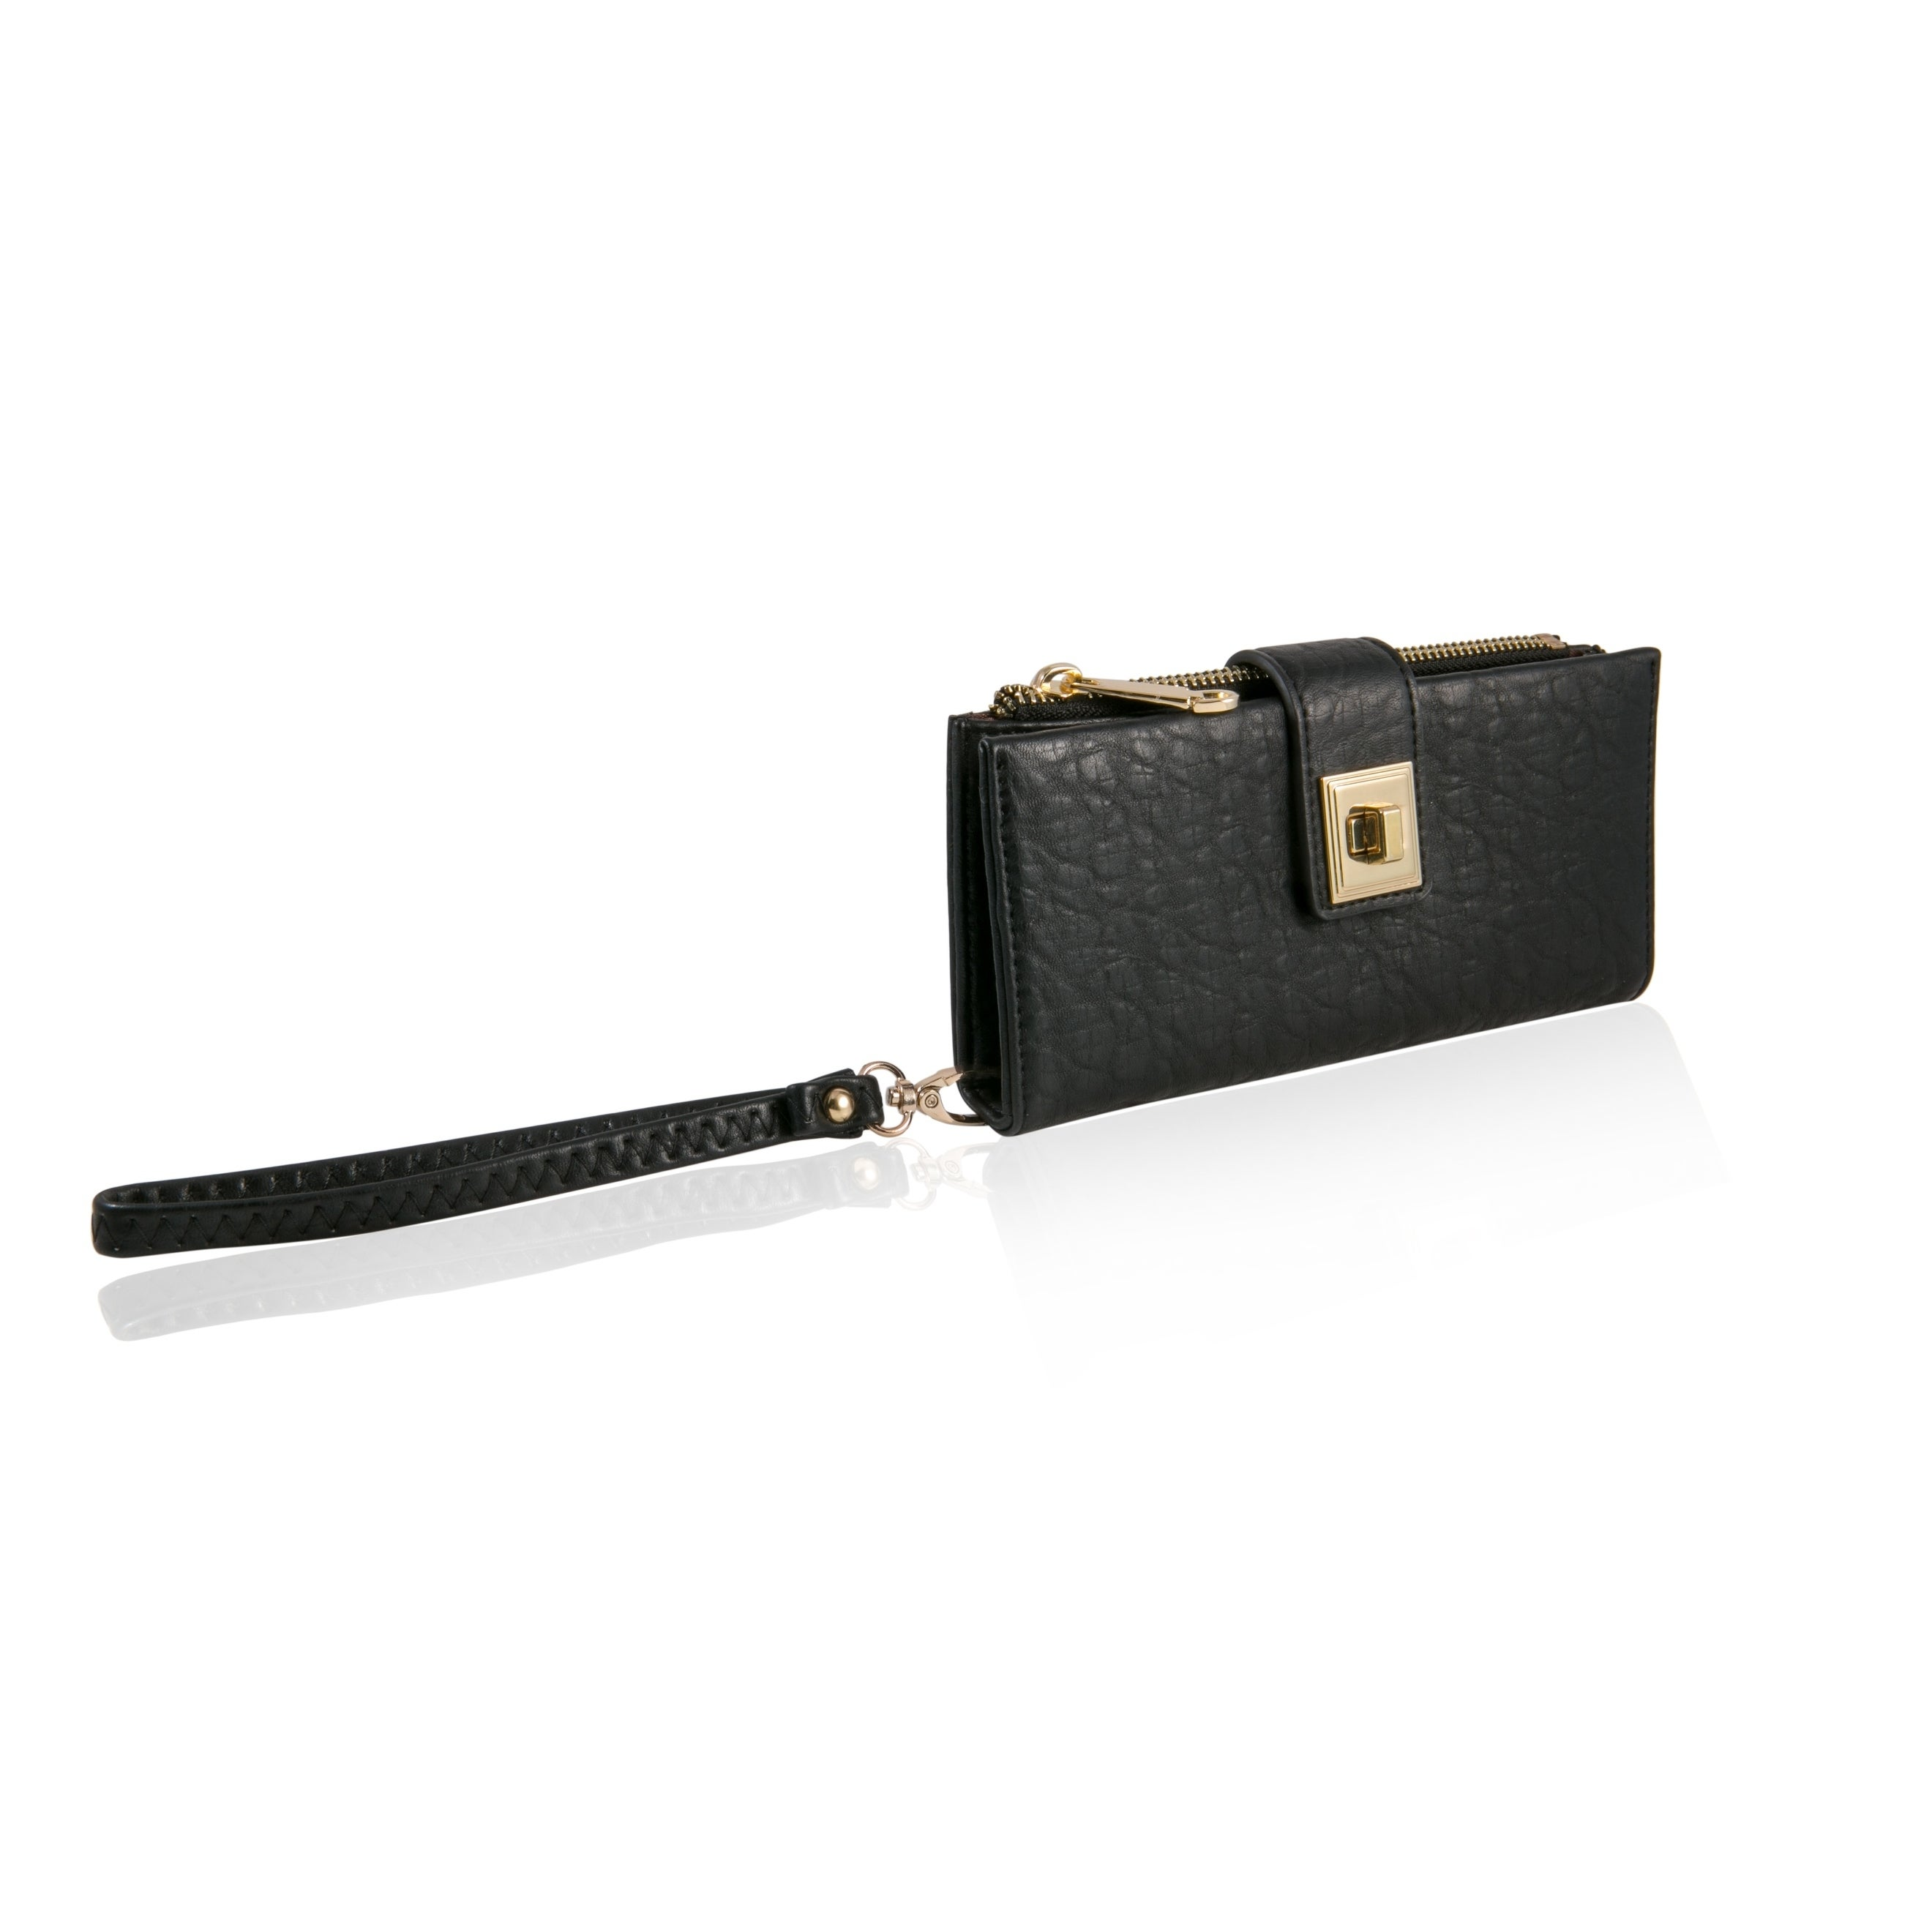 Mkf Collection By Mia K Farrow Ziggy Wallet Wristlet Free Shipping Satchel Black On Orders Over 45 26774614